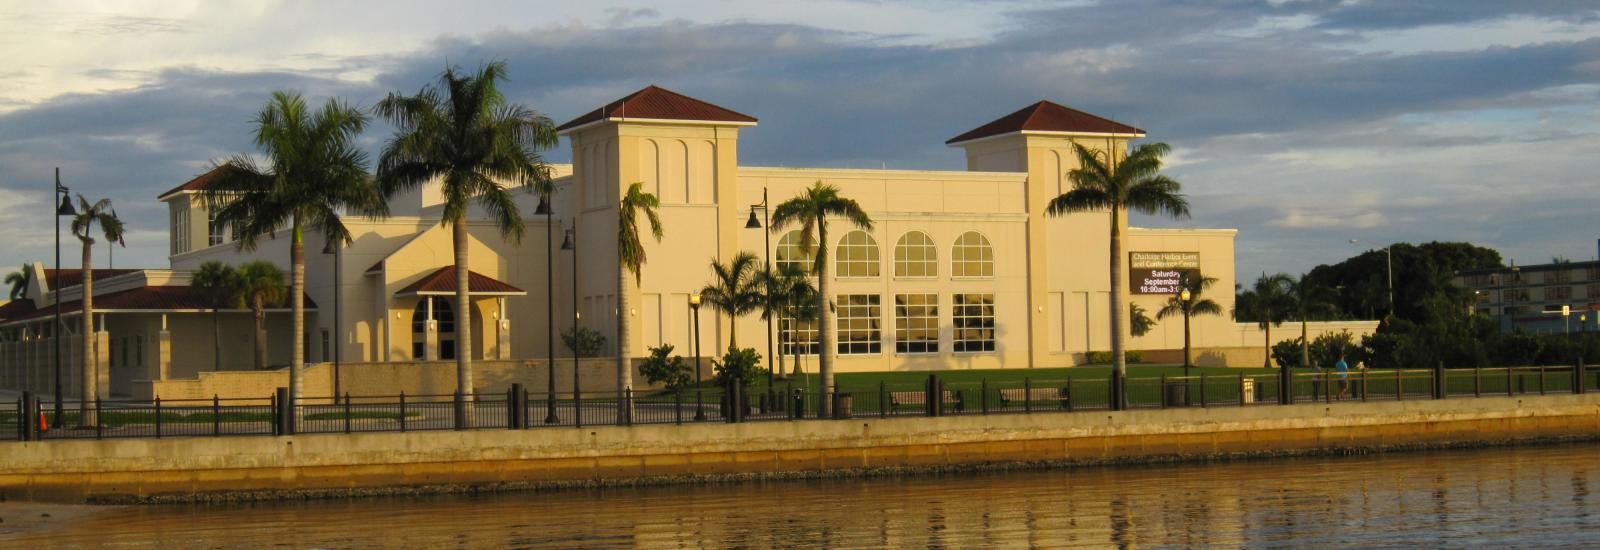 Charlotte Harbor Event and Conferenc Center